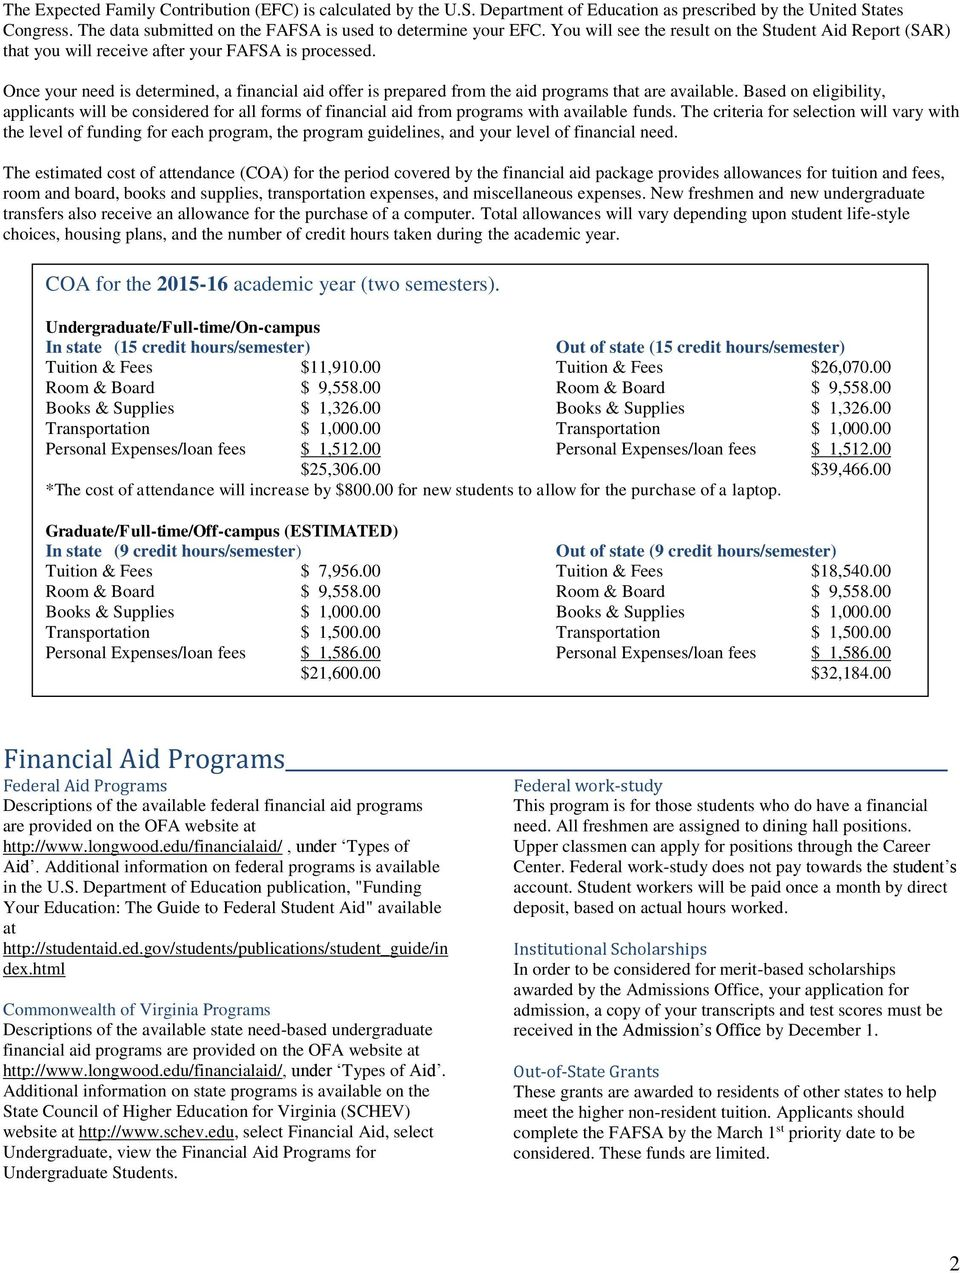 Once your need is determined, a financial aid offer is prepared from the aid programs that are available.